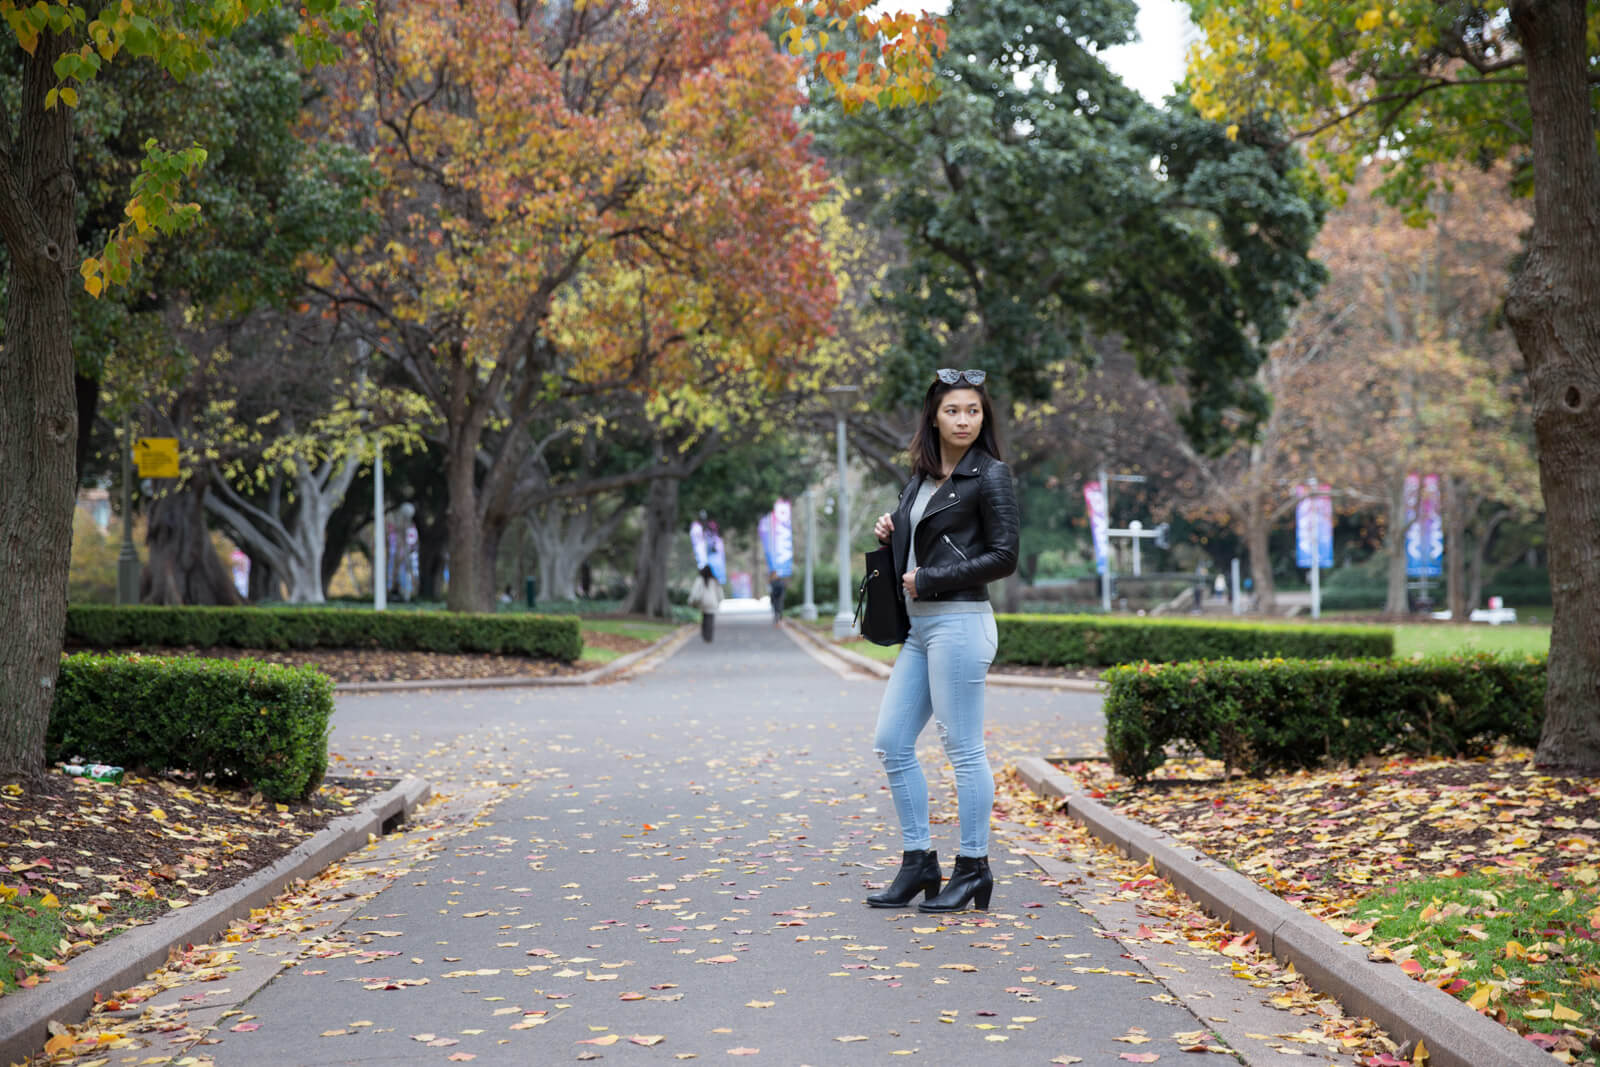 A woman in light blue jeans and a black leather jacket, holding a handbag over her right shoulder. Her left side faces the camera. She is standing on a path surrounded by trees with yellow and green leaves.